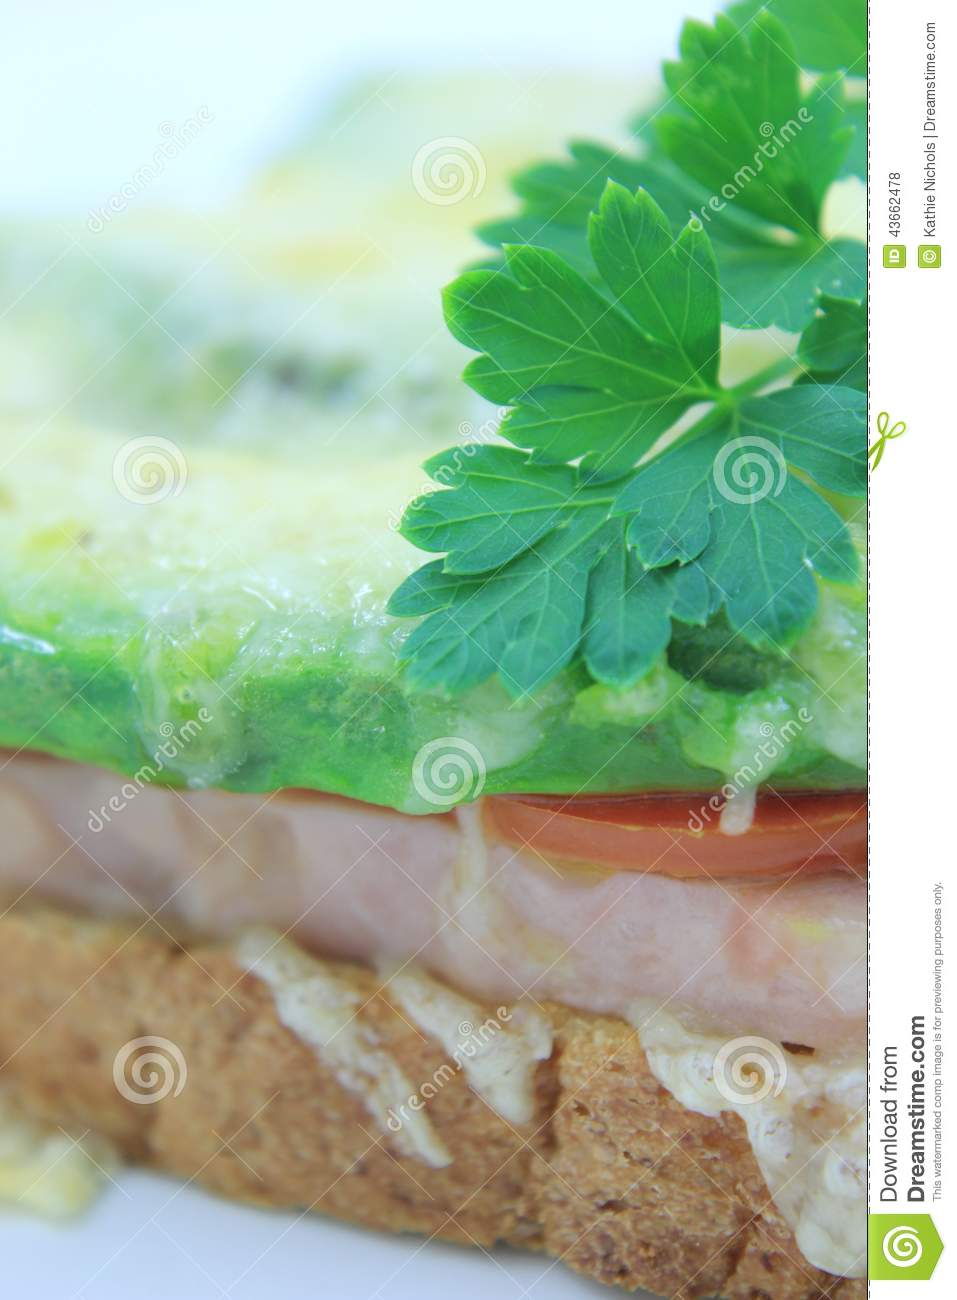 Grilled Ham Cheese Tomato And Avocado On Toast 3 Stock Photo - Image ...